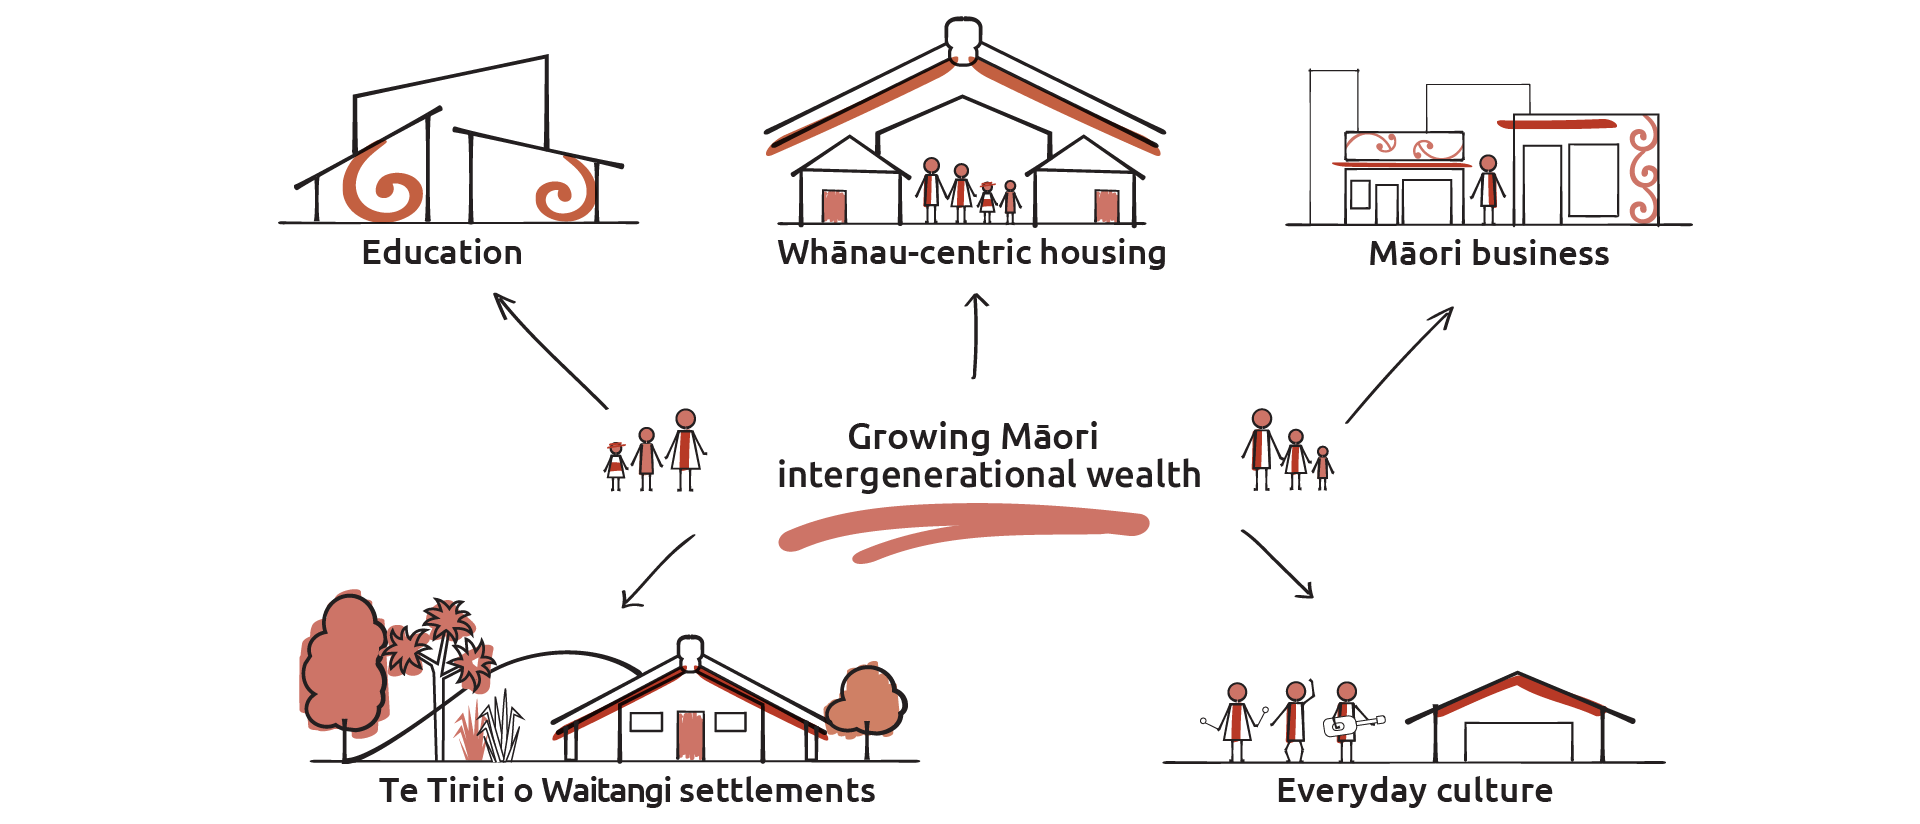 An image showing the key elements that drive improved Māori intergenerational wealth – education, improved housing, Māori businesses, Te Tiriti o Waitangi settlements and Māori culture.